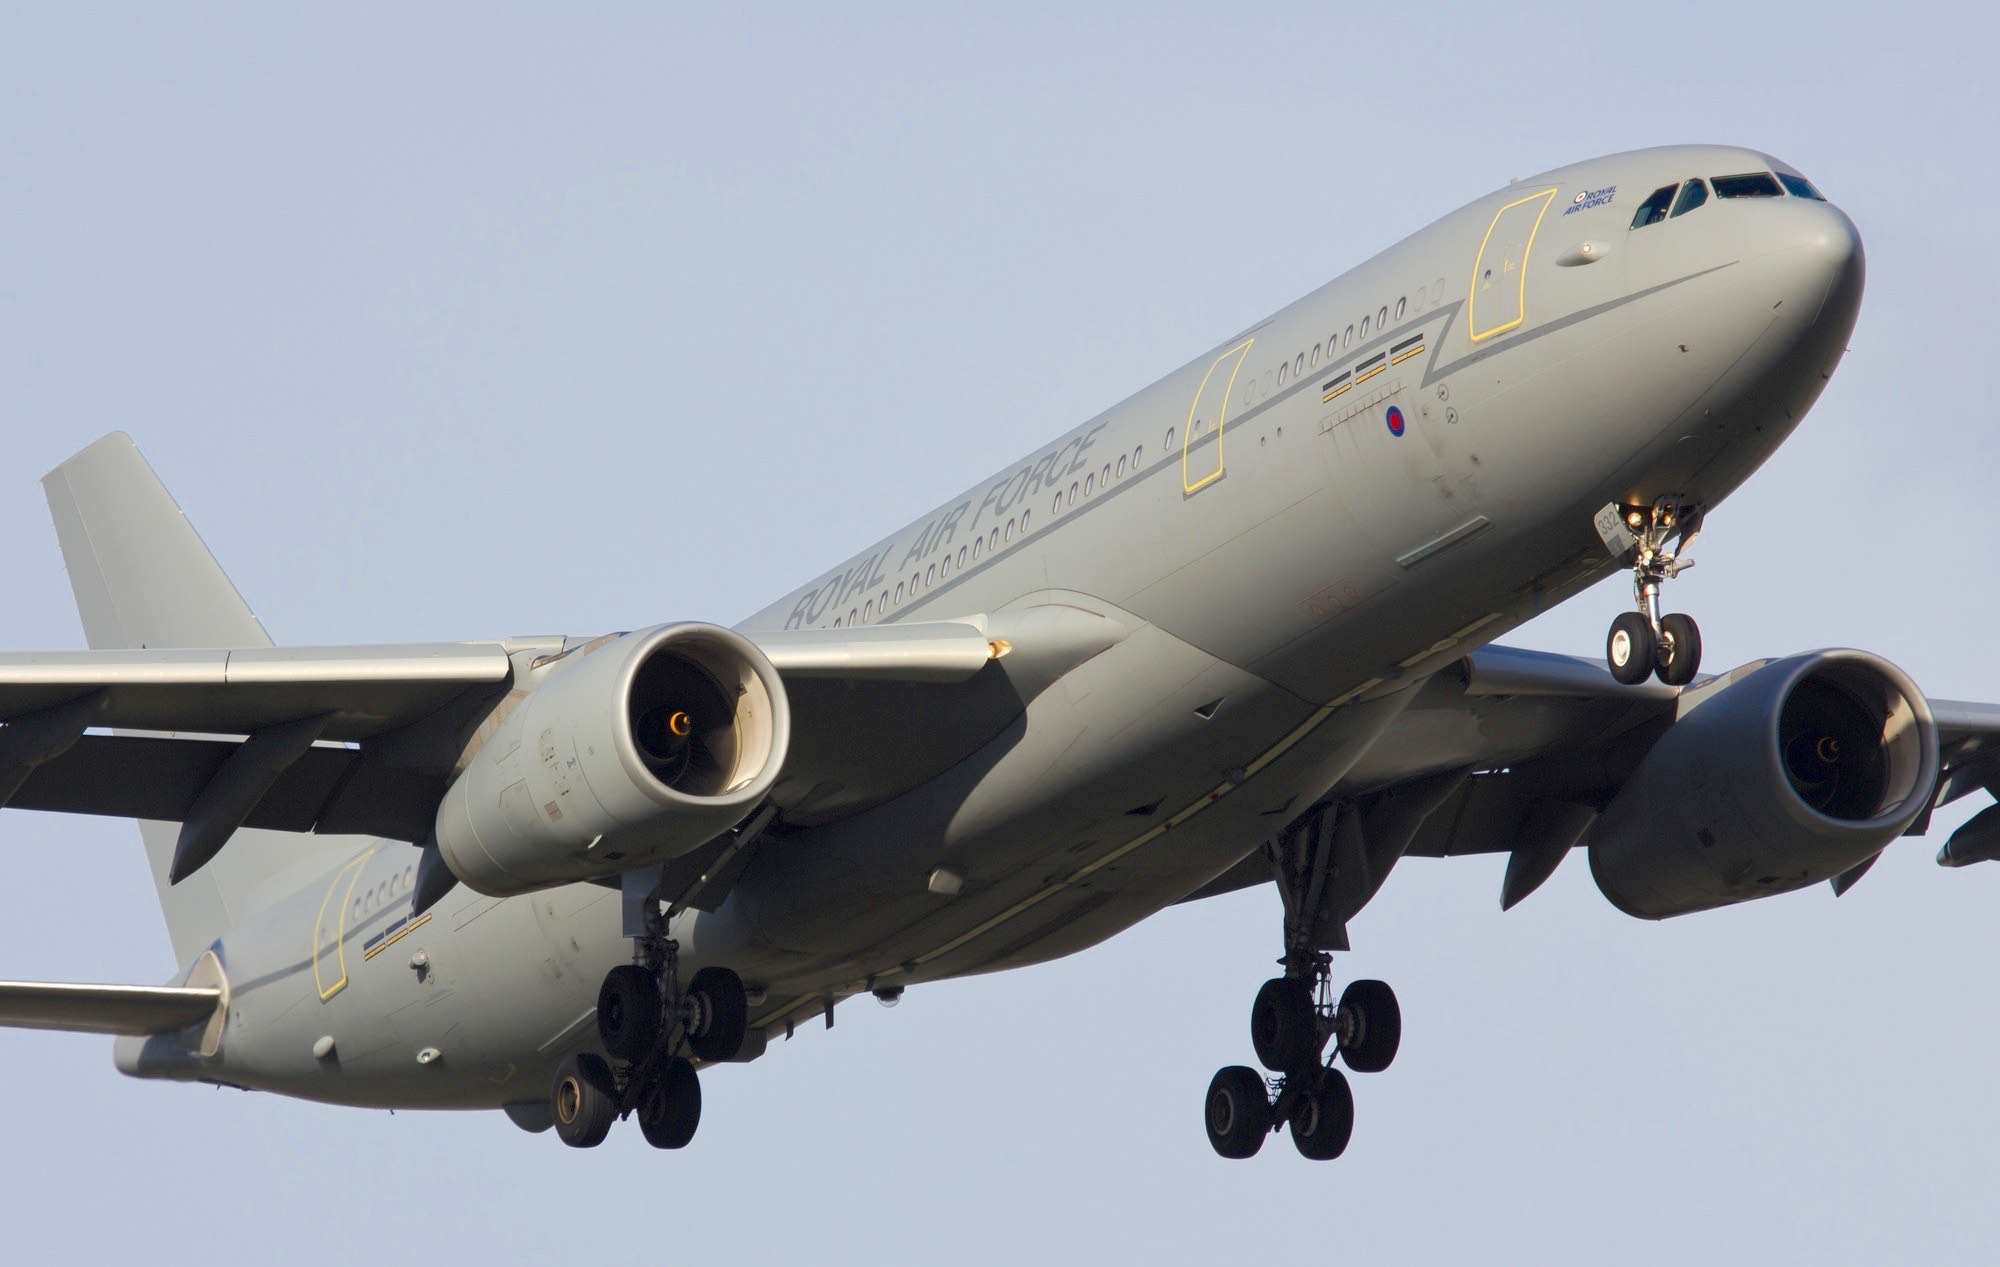 ZZ334 A330 MRTT Royal Air Force